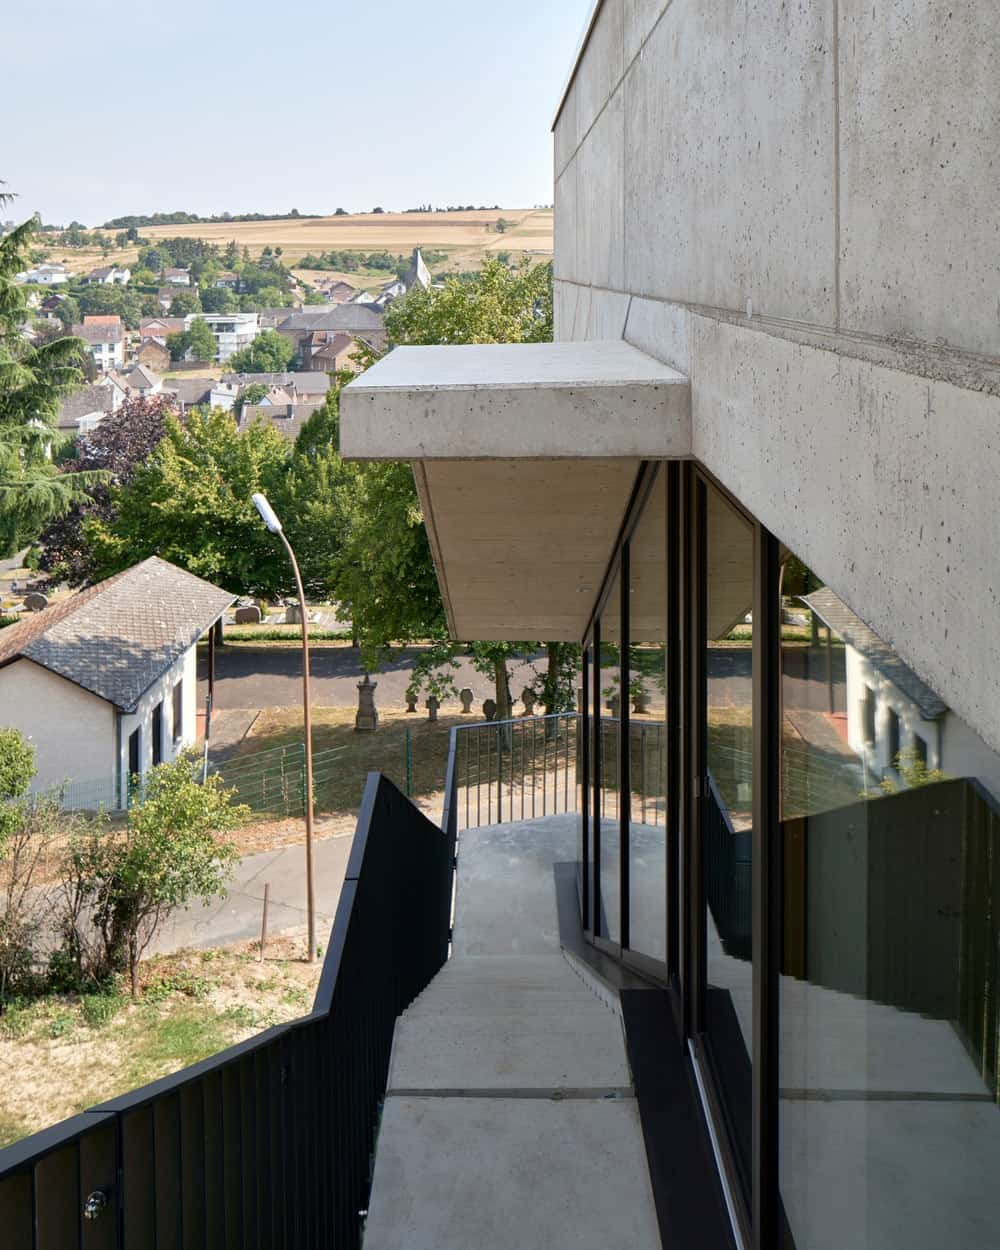 The balcony leads to this outdoor staircase that is still followed by glass walls.